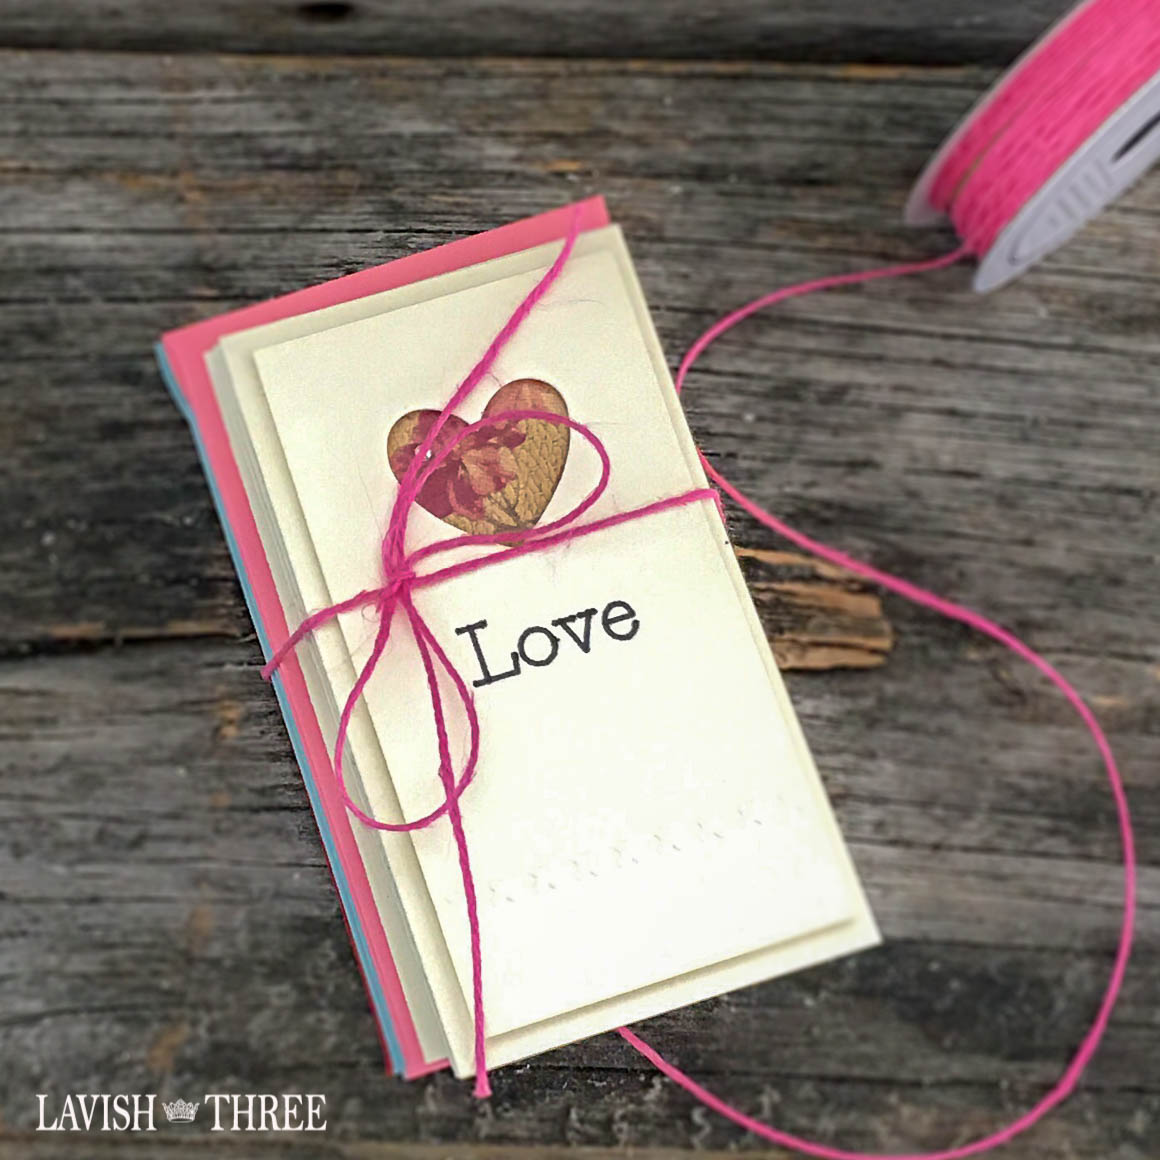 Embossed Love note heart cards with envelopes by Penny Thomas, Lavish Three 3